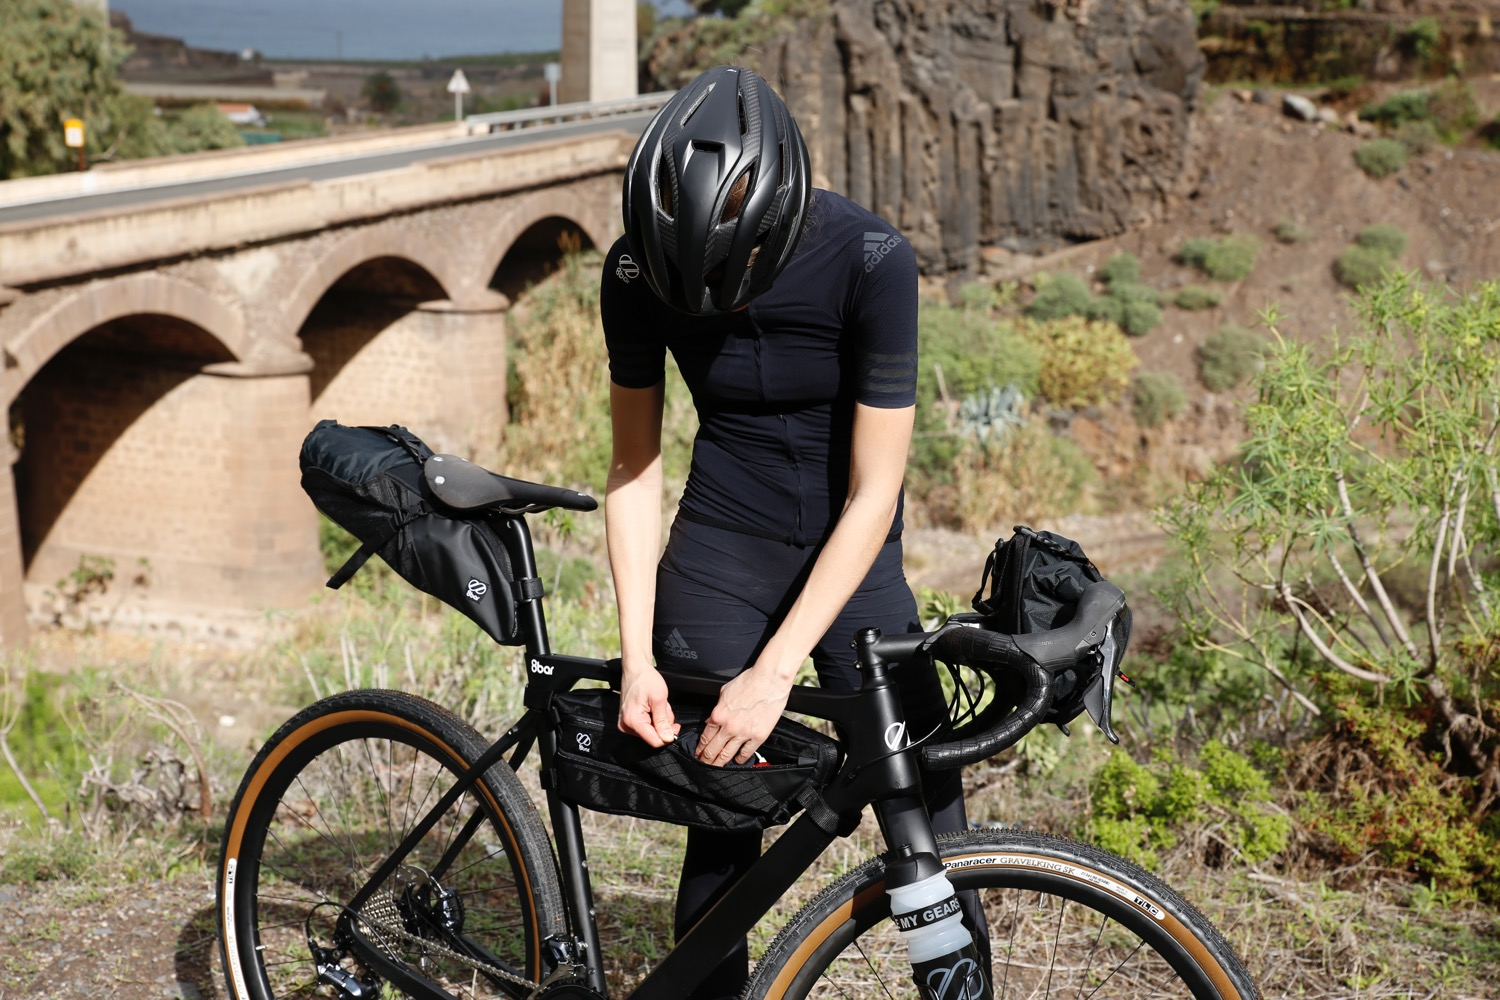 8bar-gran-canaria-001-grunewald-framebag-saddlebag-bike-mood-gravel-allride-met